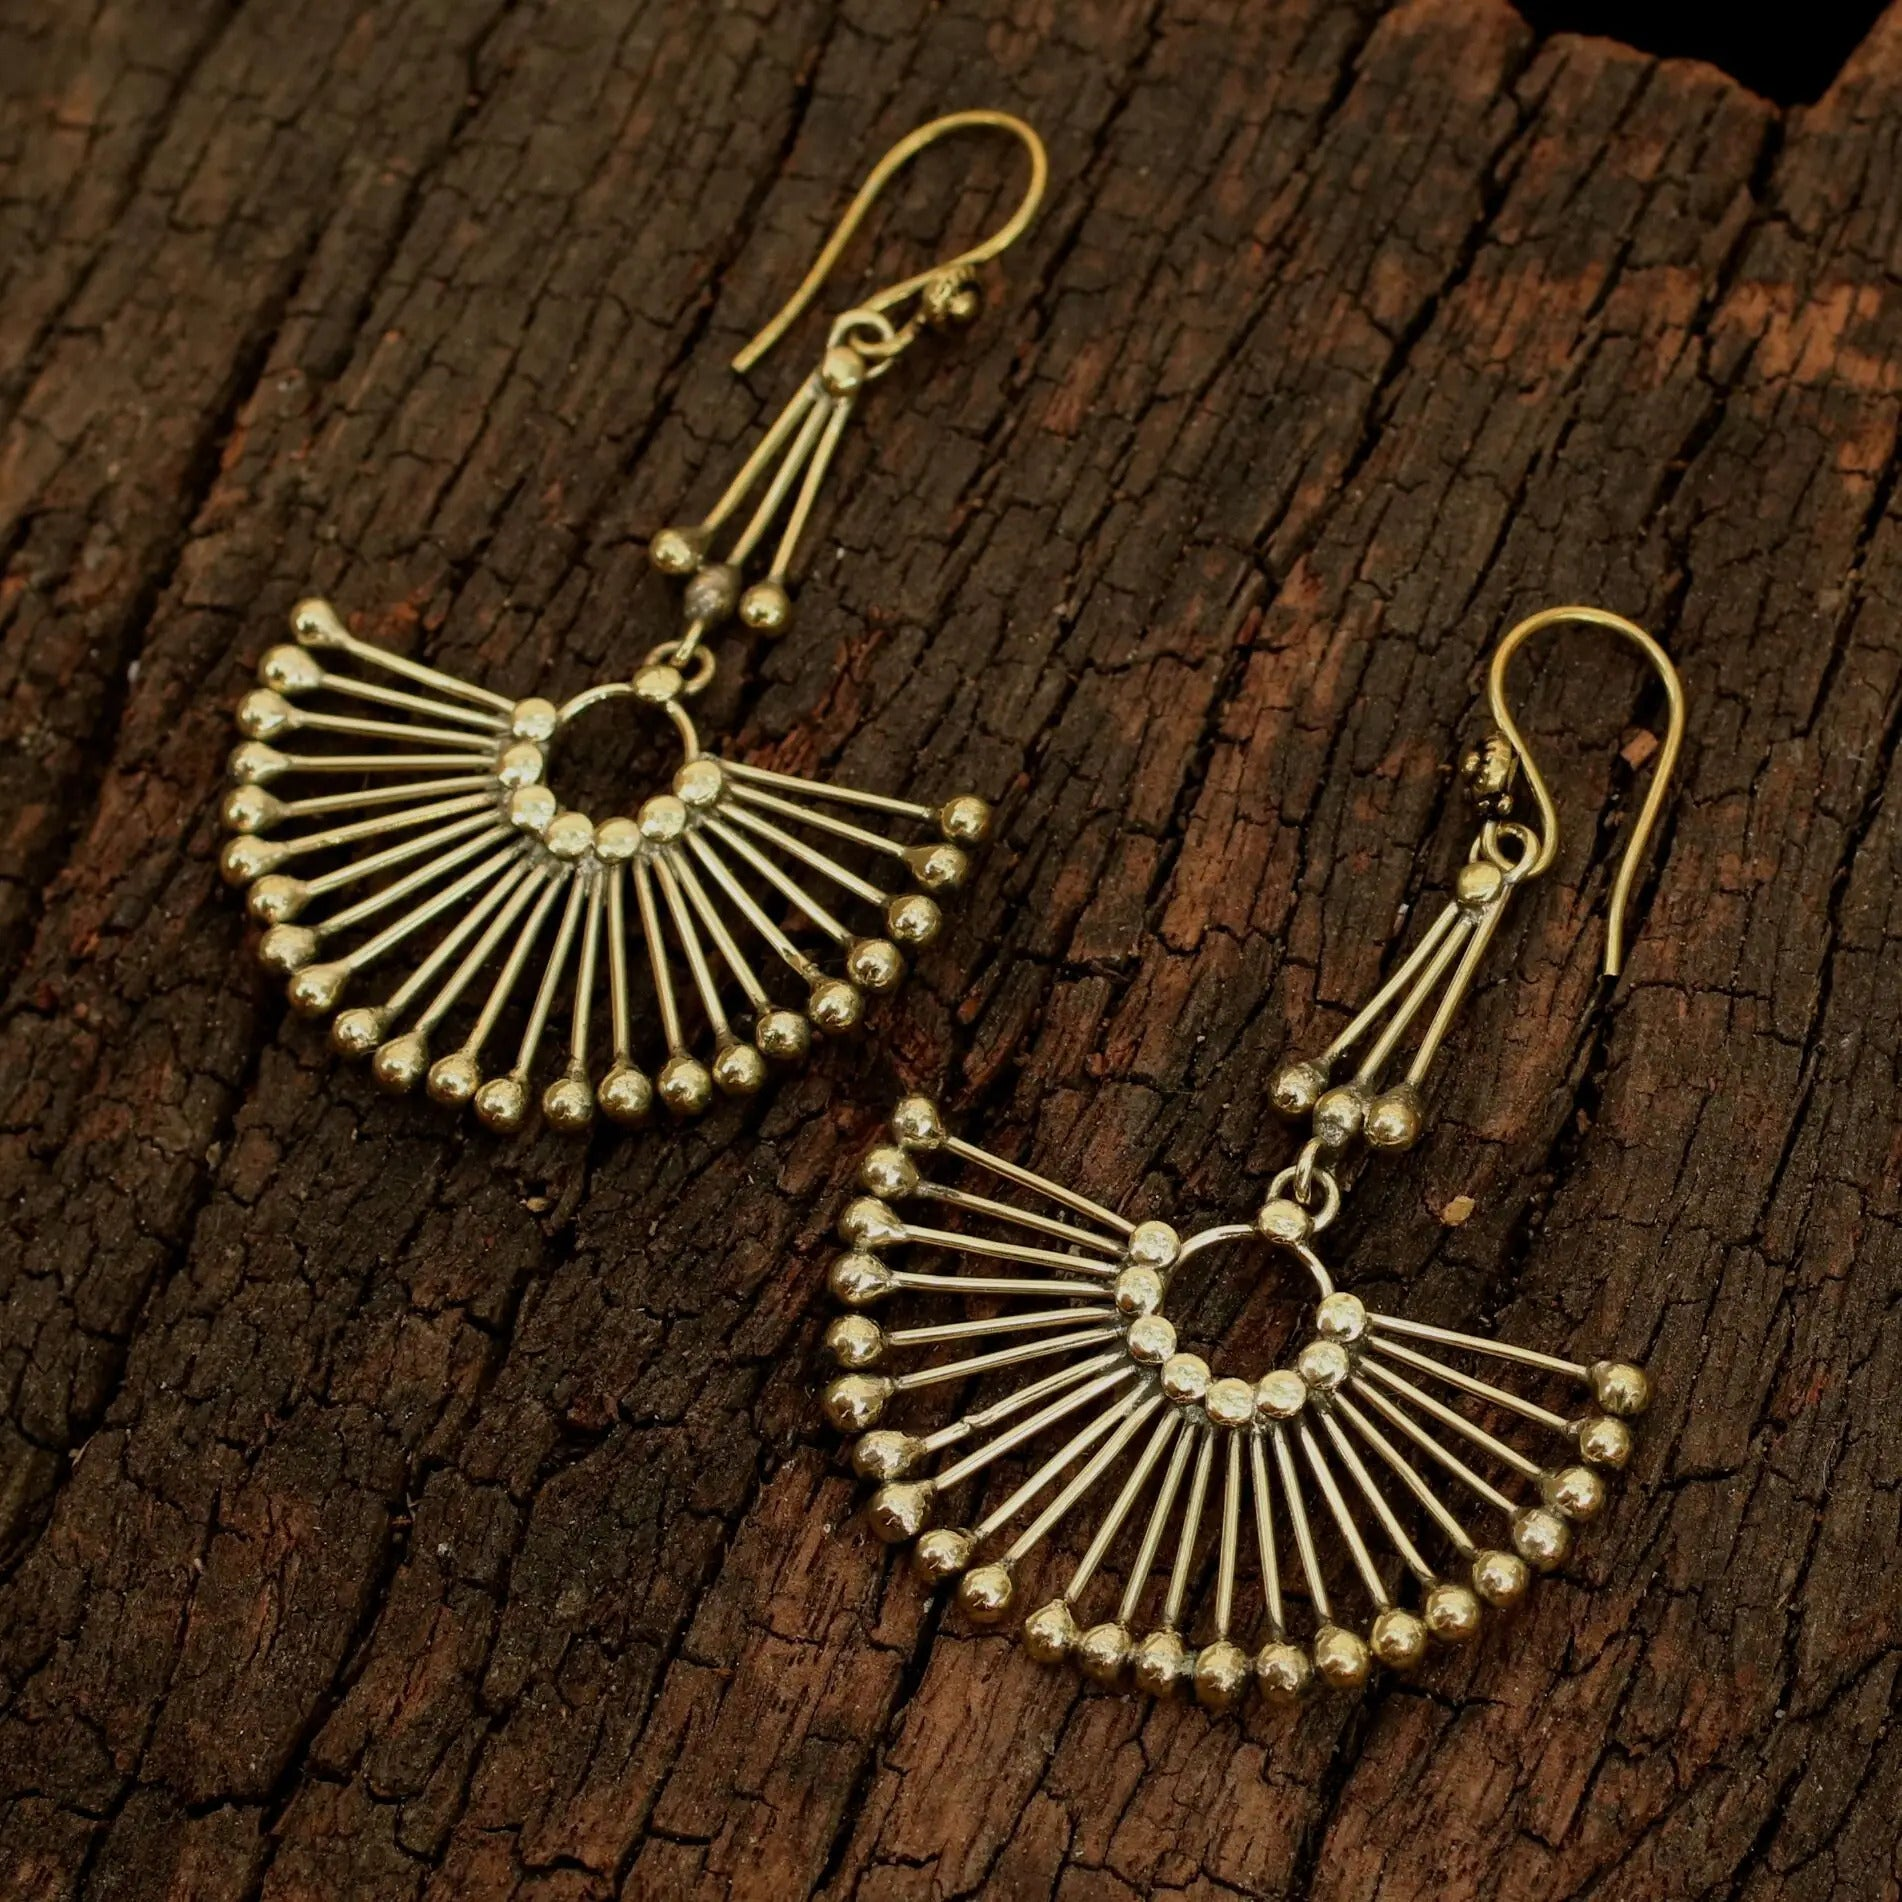 Brass Peacock Earrings